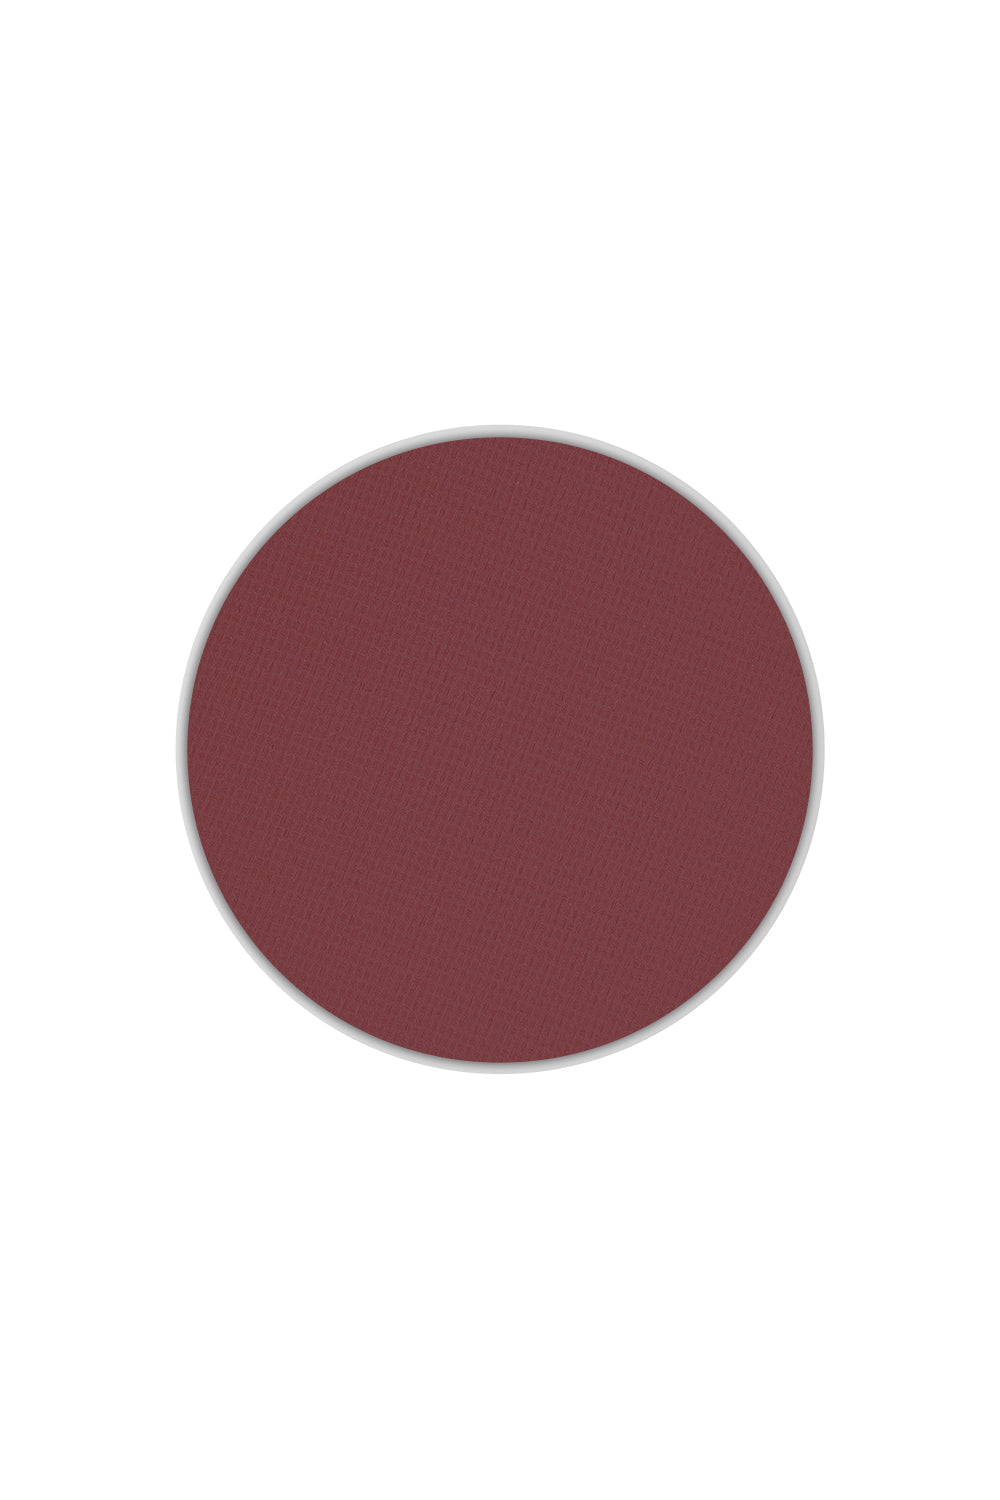 Type 3 Eyeshadow Pan - Shiraz Matte